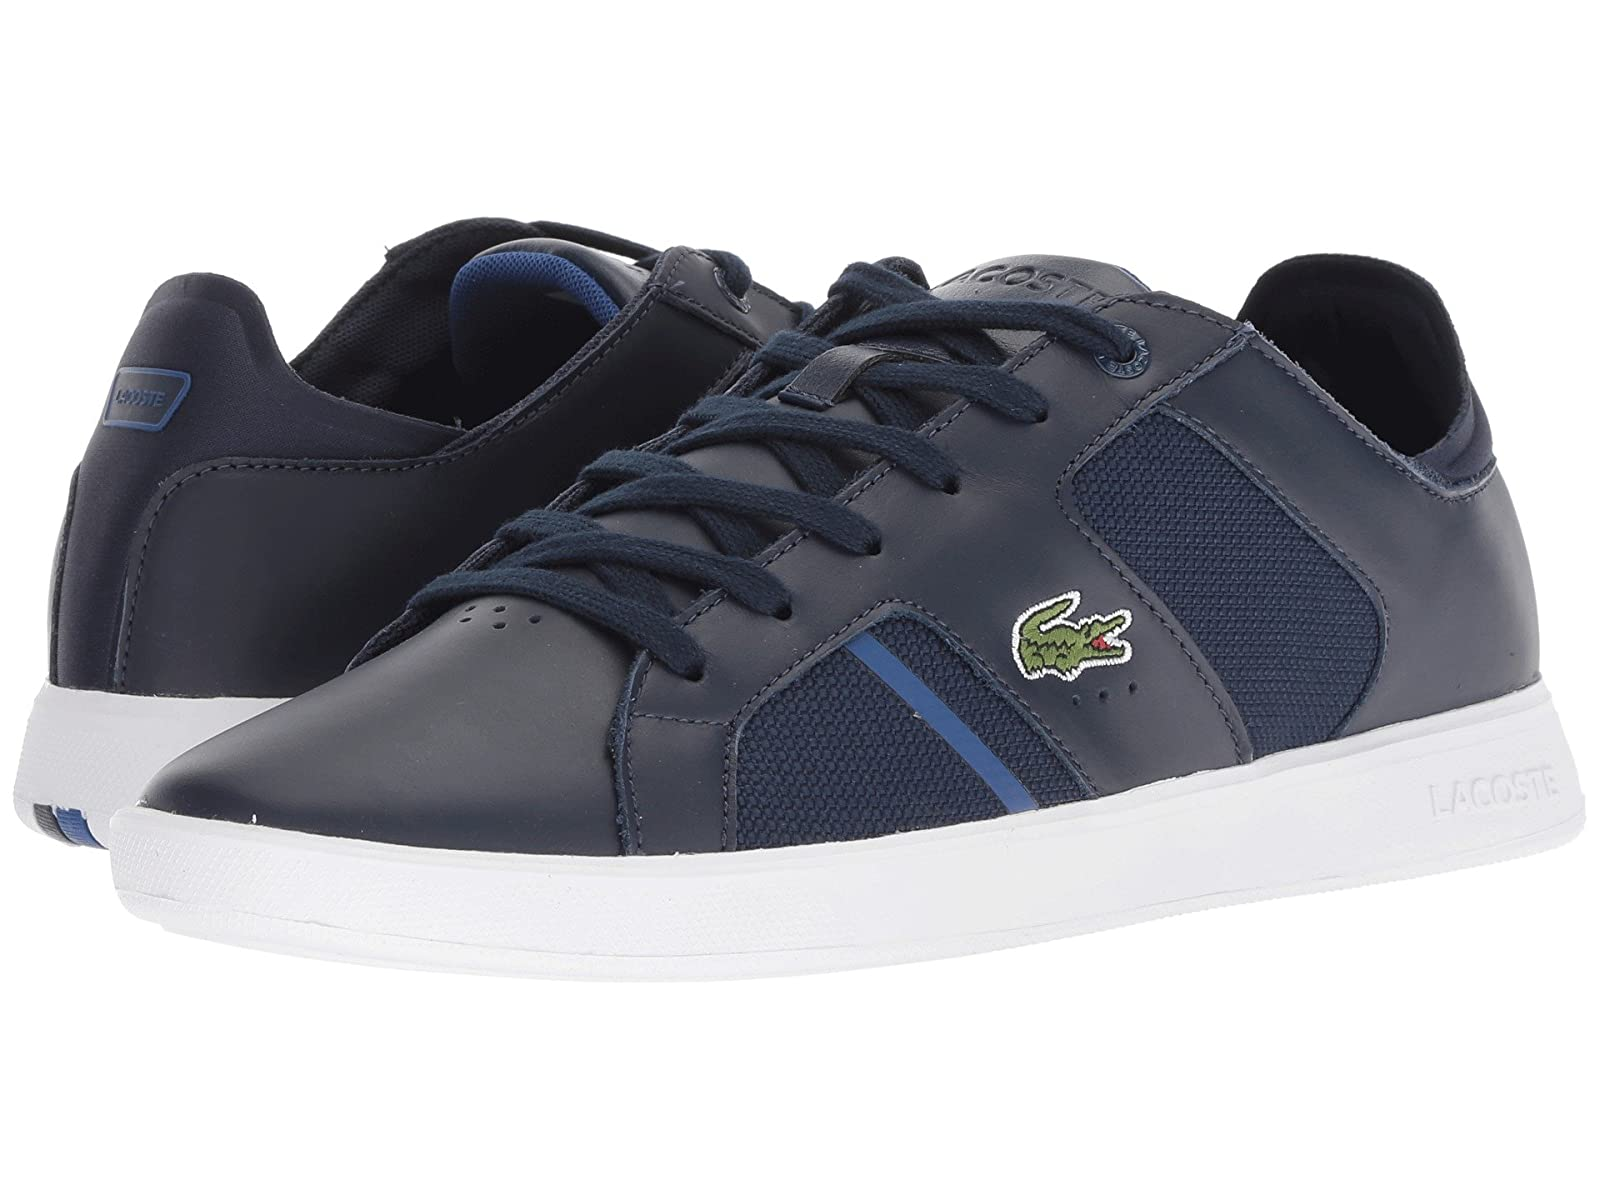 Lacoste Novas 318 2Atmospheric grades have affordable shoes